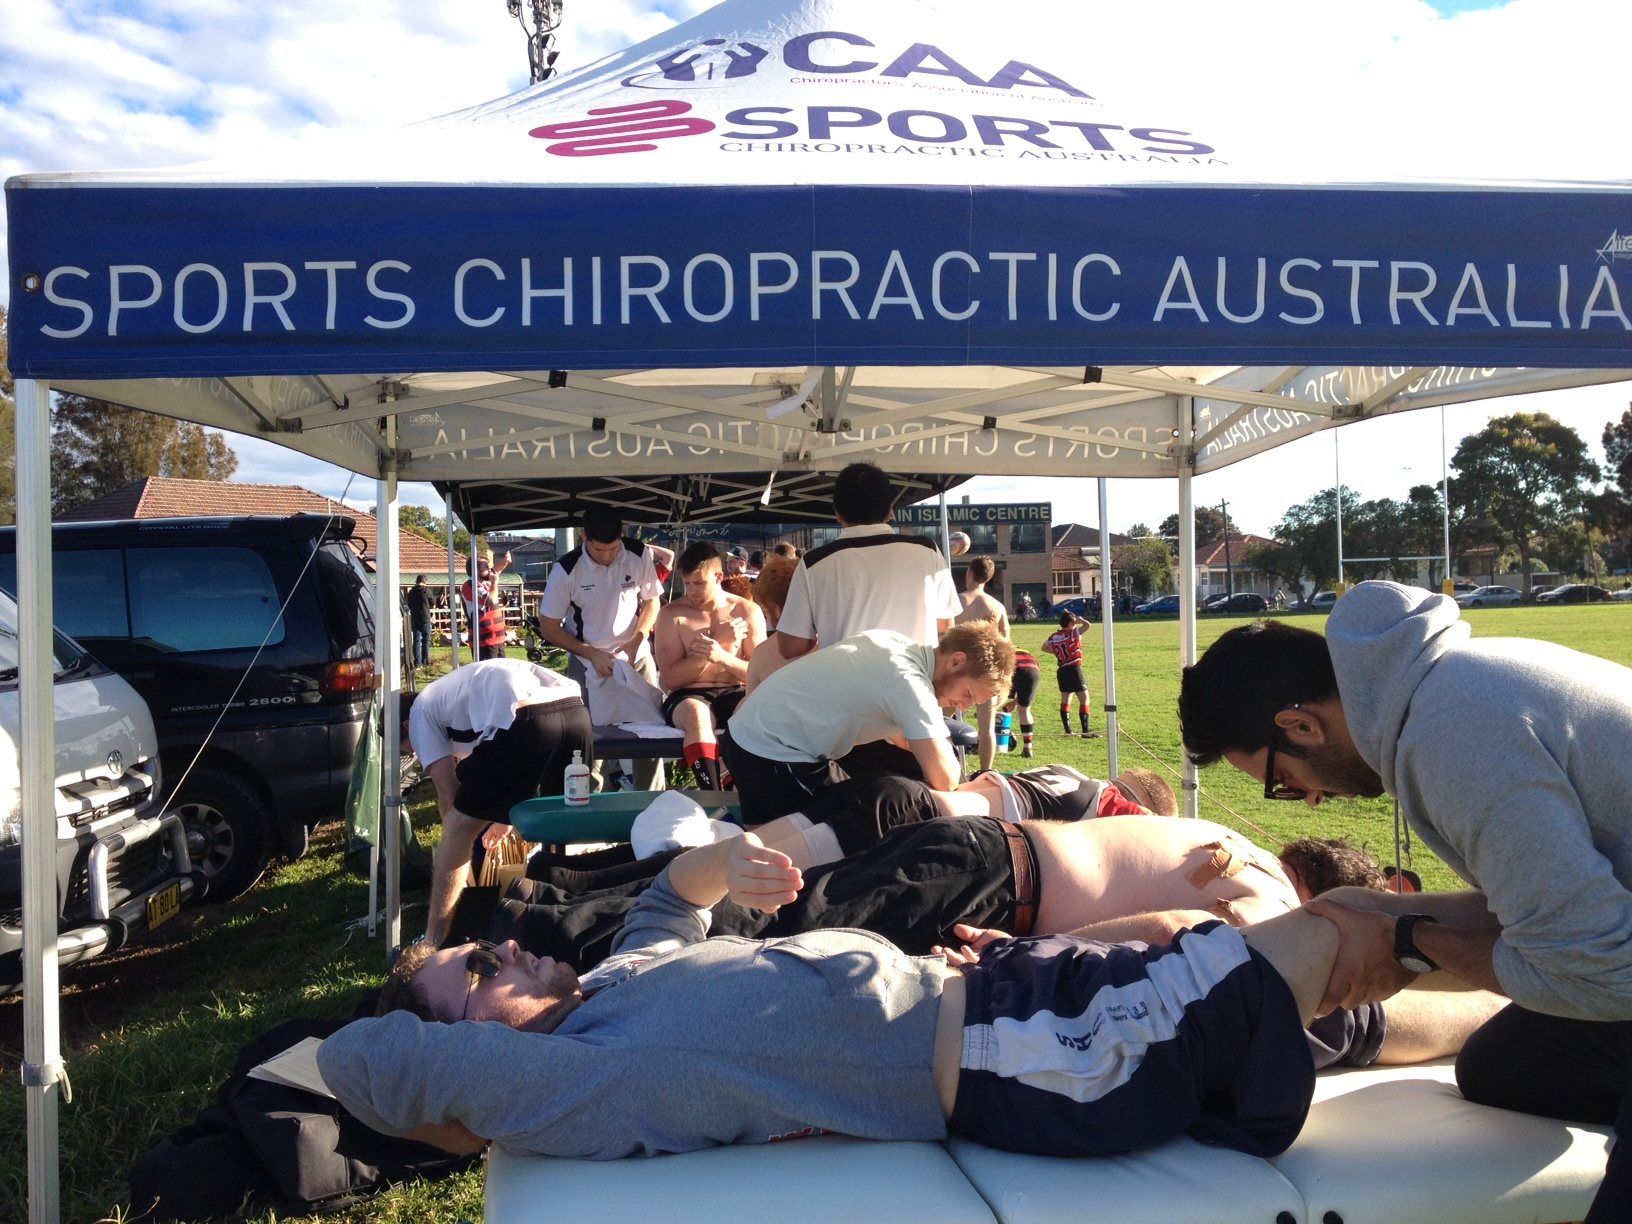 Chiropractic interns treating Macquarie University Rugby players